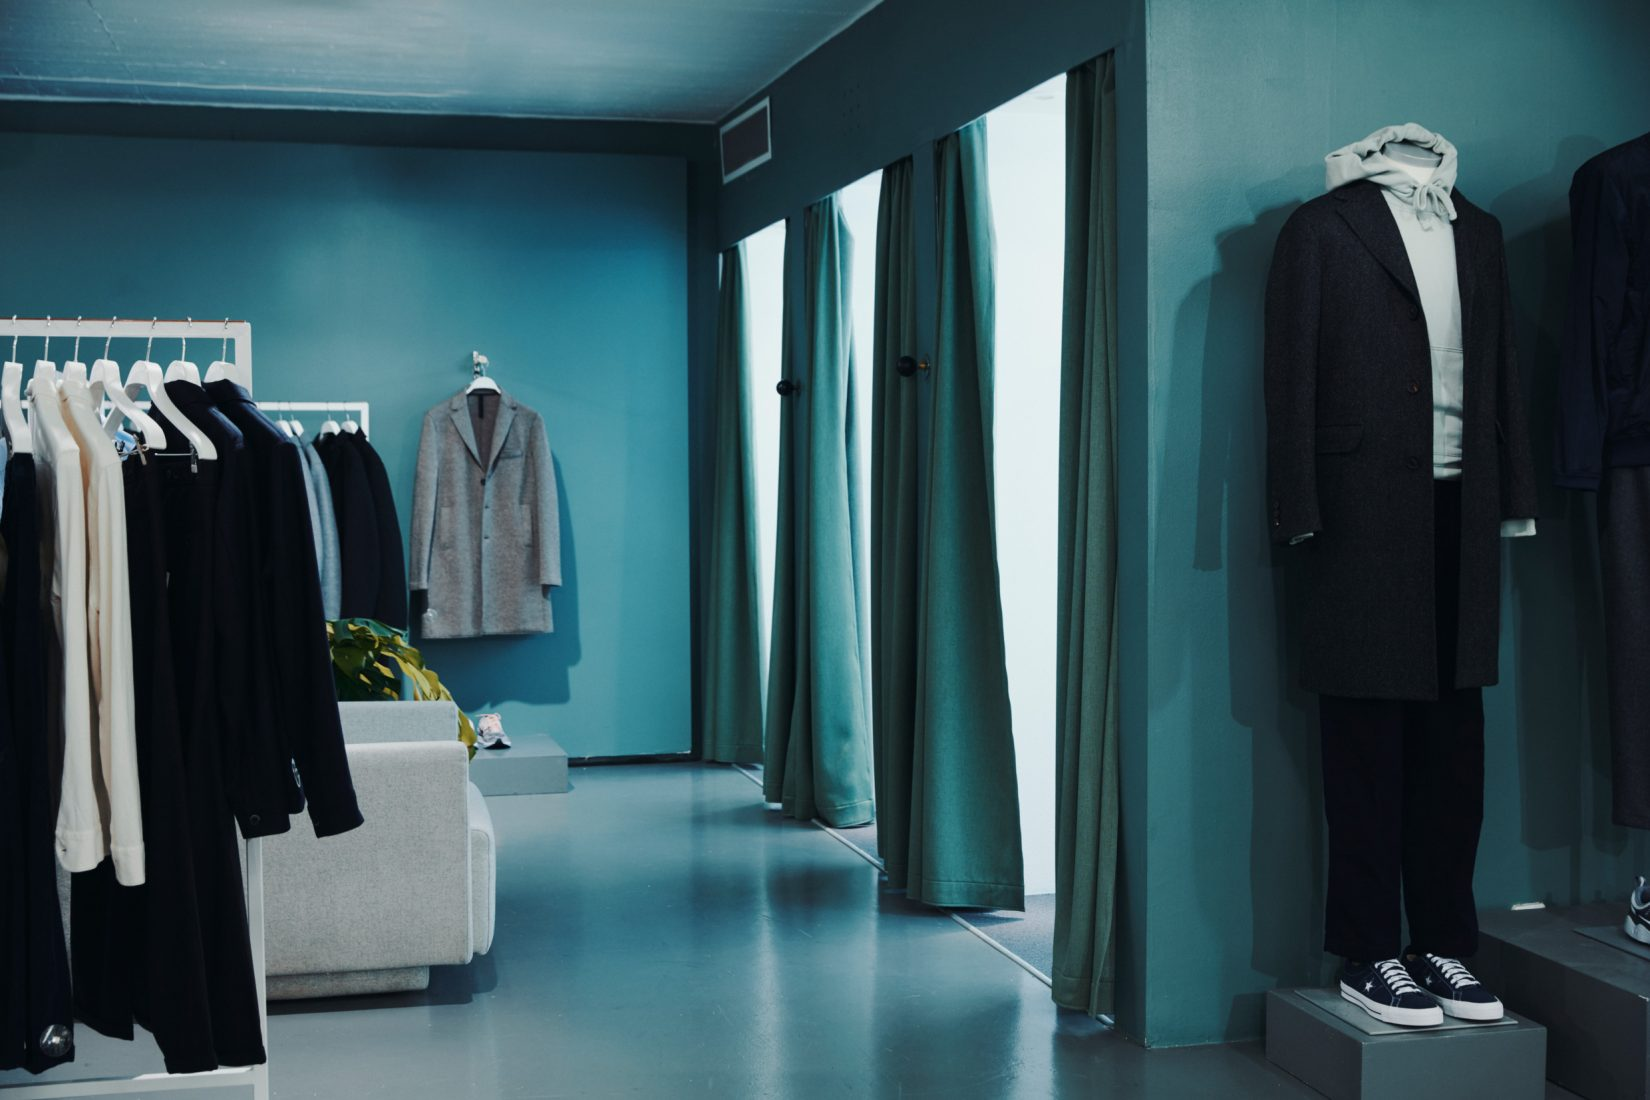 Inside an independent fashion store with colours in turquoise